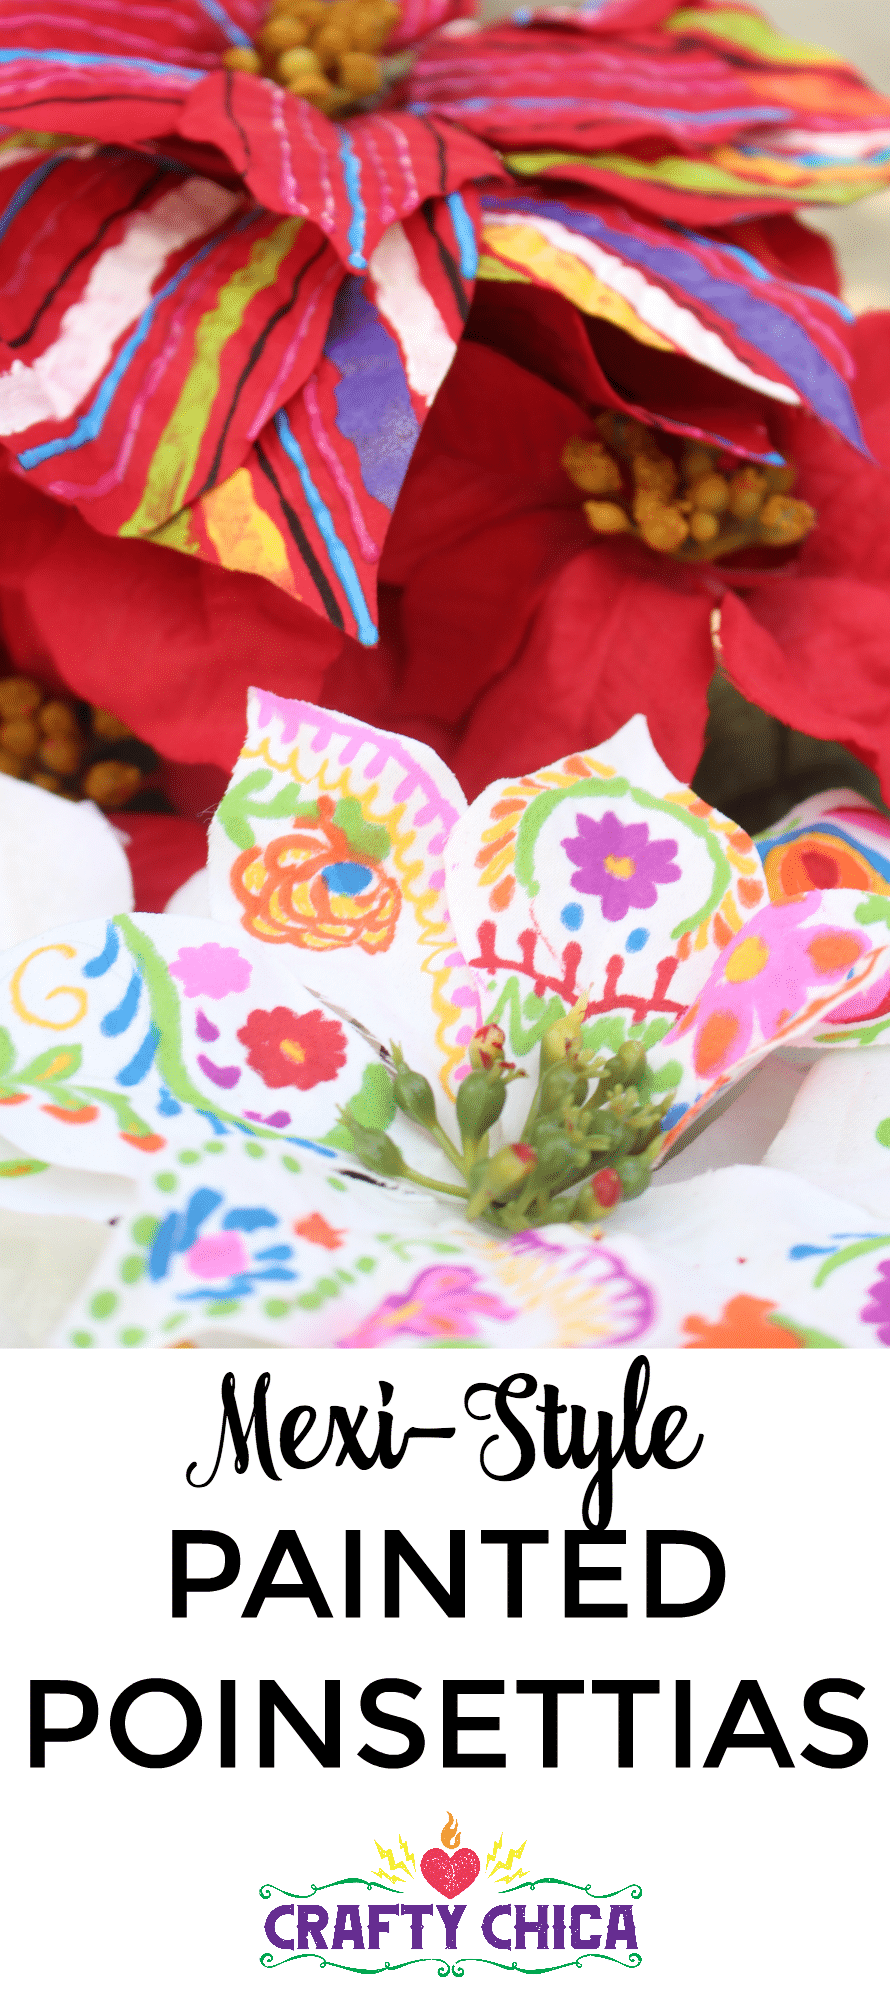 Mexi-style Painted Poinsettias by CraftyChica.com